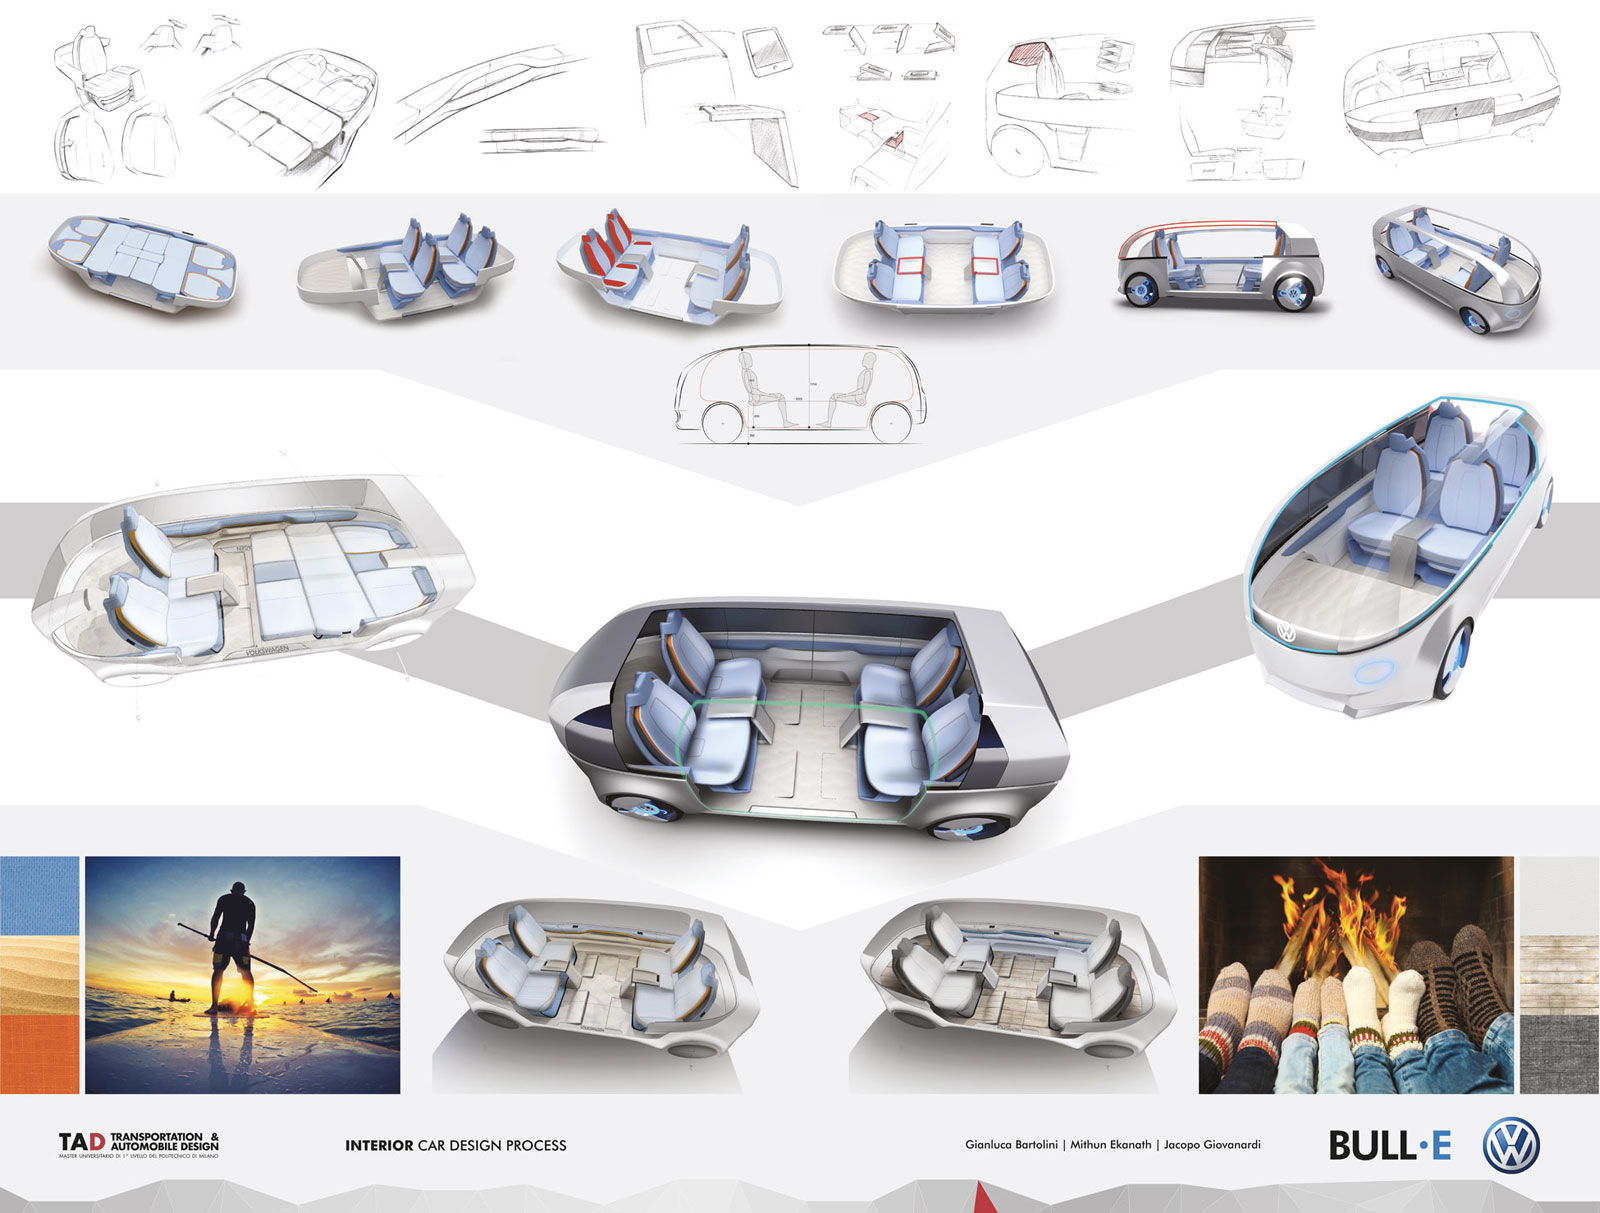 Volkswagen Bull E Interior Design Process Car Body Design